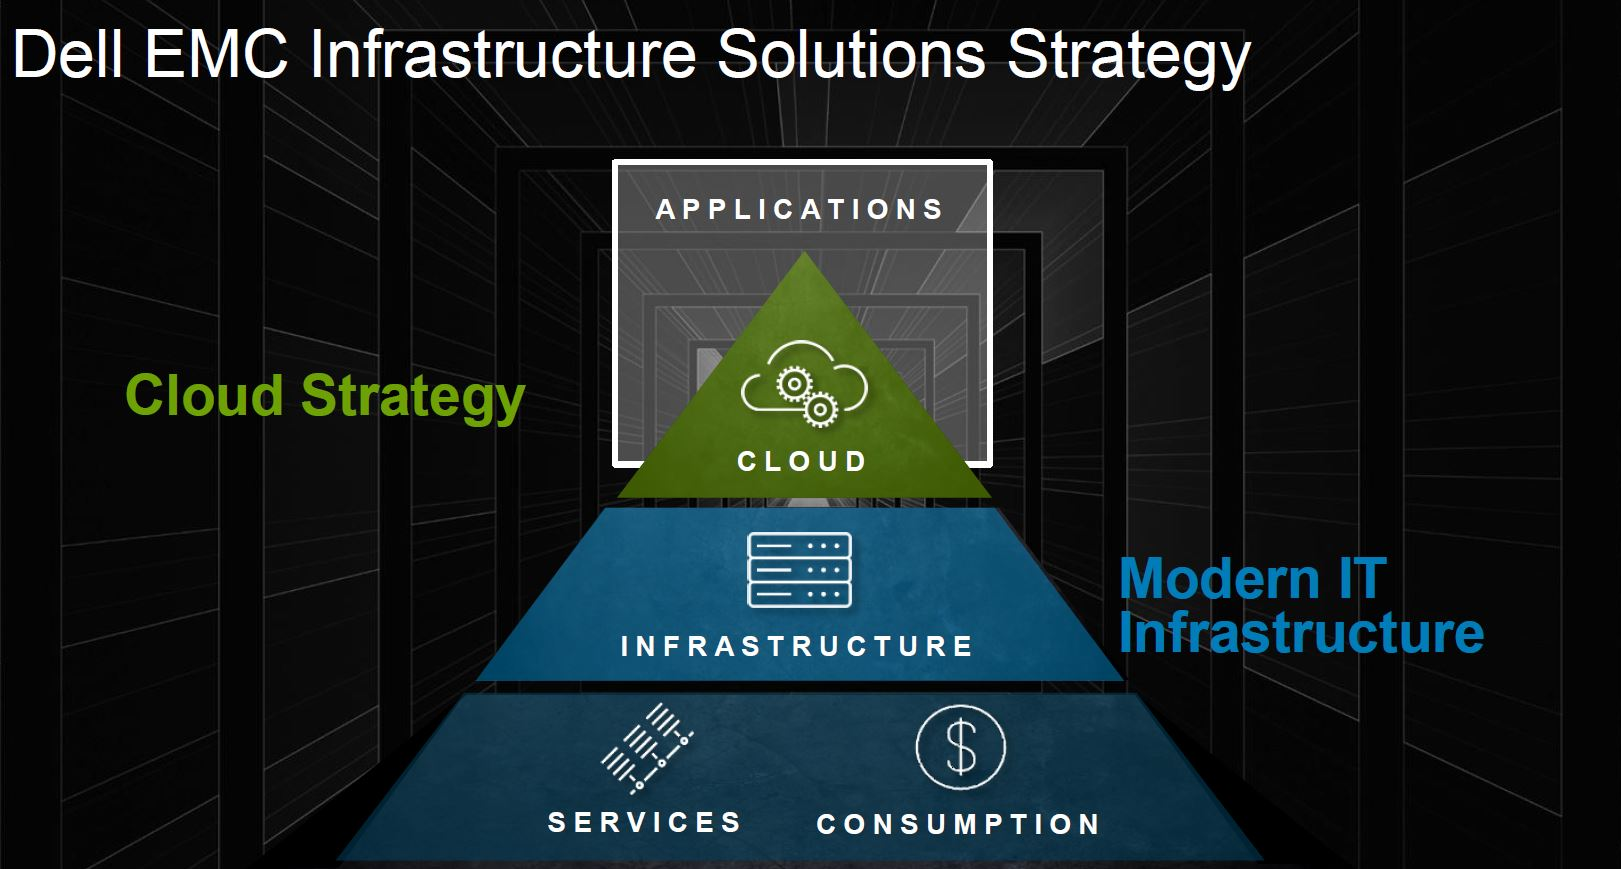 Dell EMC Infrastructure Solutions Strategy 2017